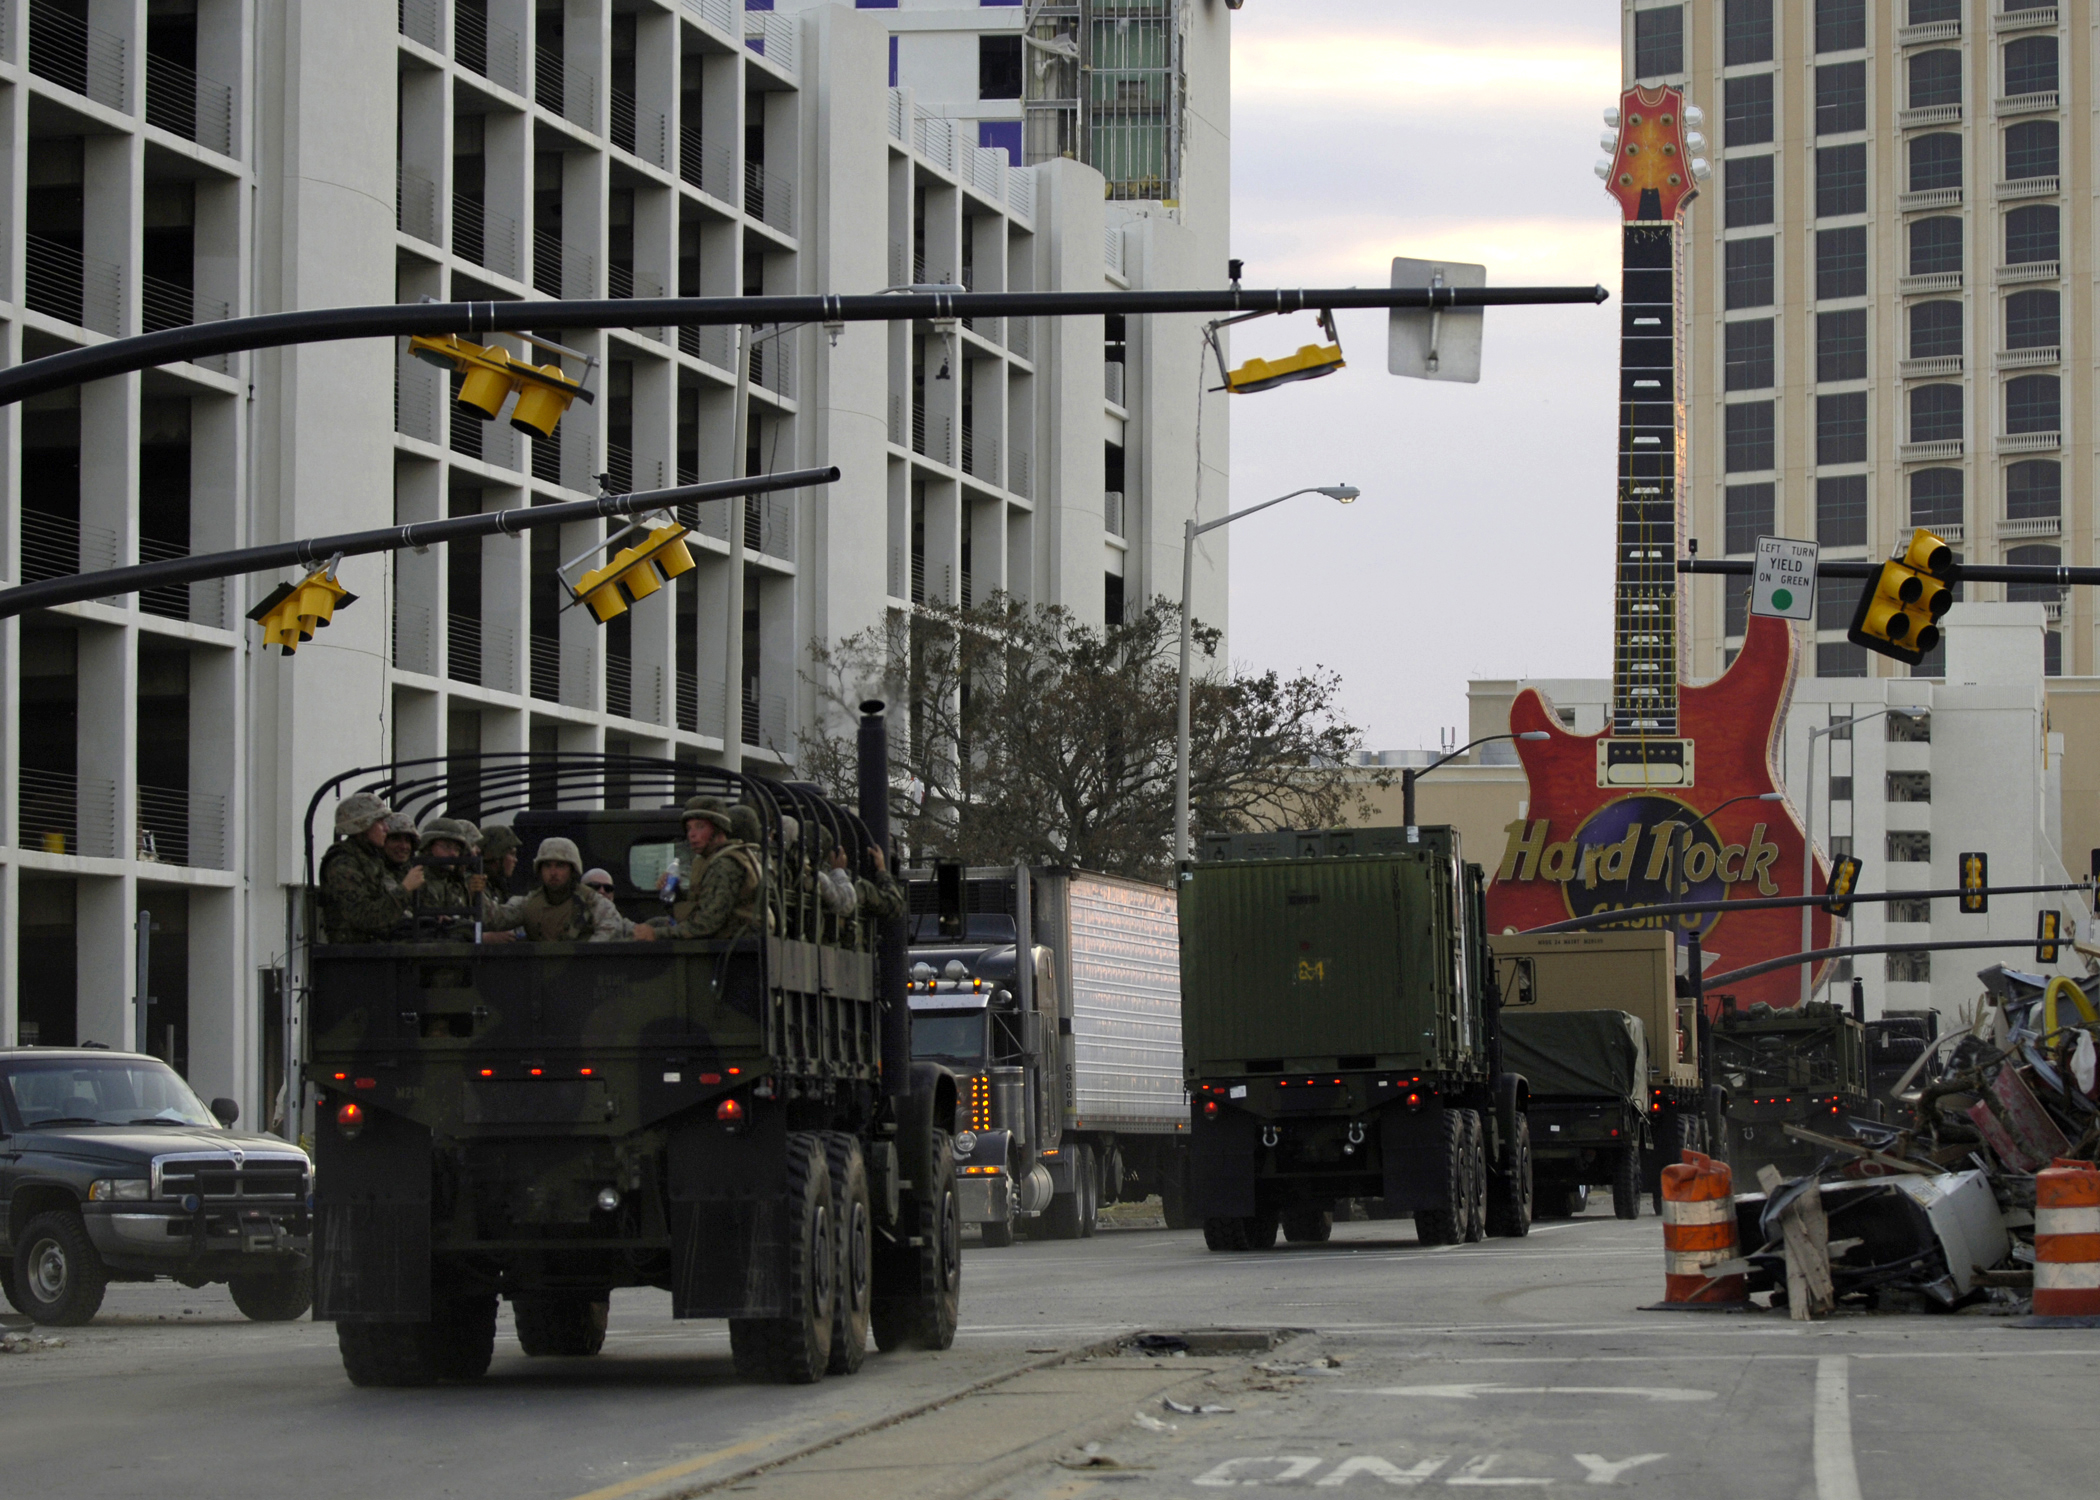 U.S. Marines Corps vehicles, assigned to the 24th Marine Expeditionary Unit, Service Support Group, travels through Biloxi, Miss., to assist the victims of Hurricane Katrina on Sept. 6, 2005. US Navy Photo